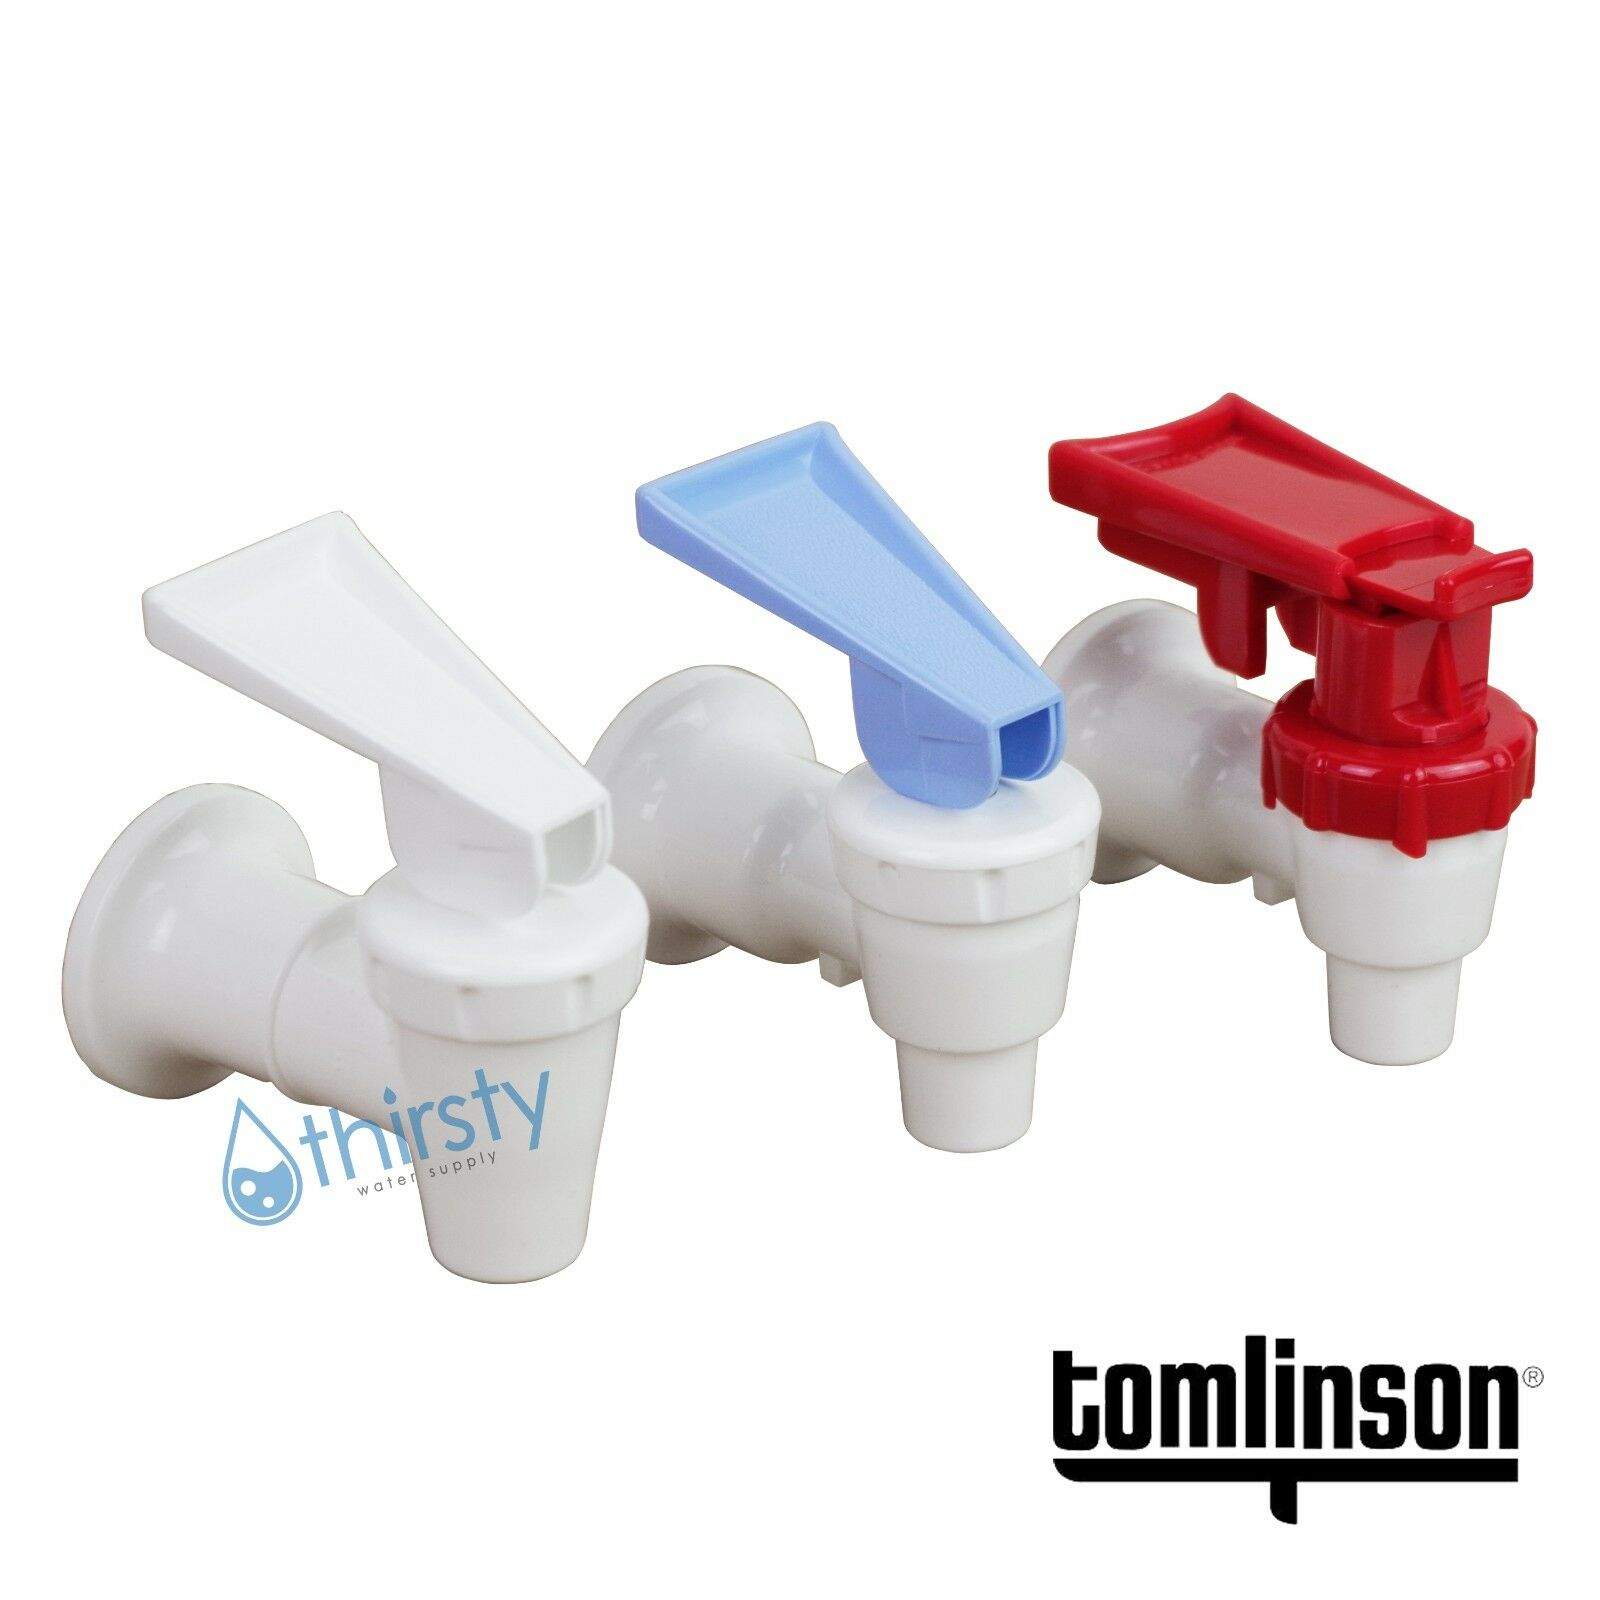 Water Cooler Spigot Faucet Tomlinson Dispenser Hot Cold Safety Lever ...